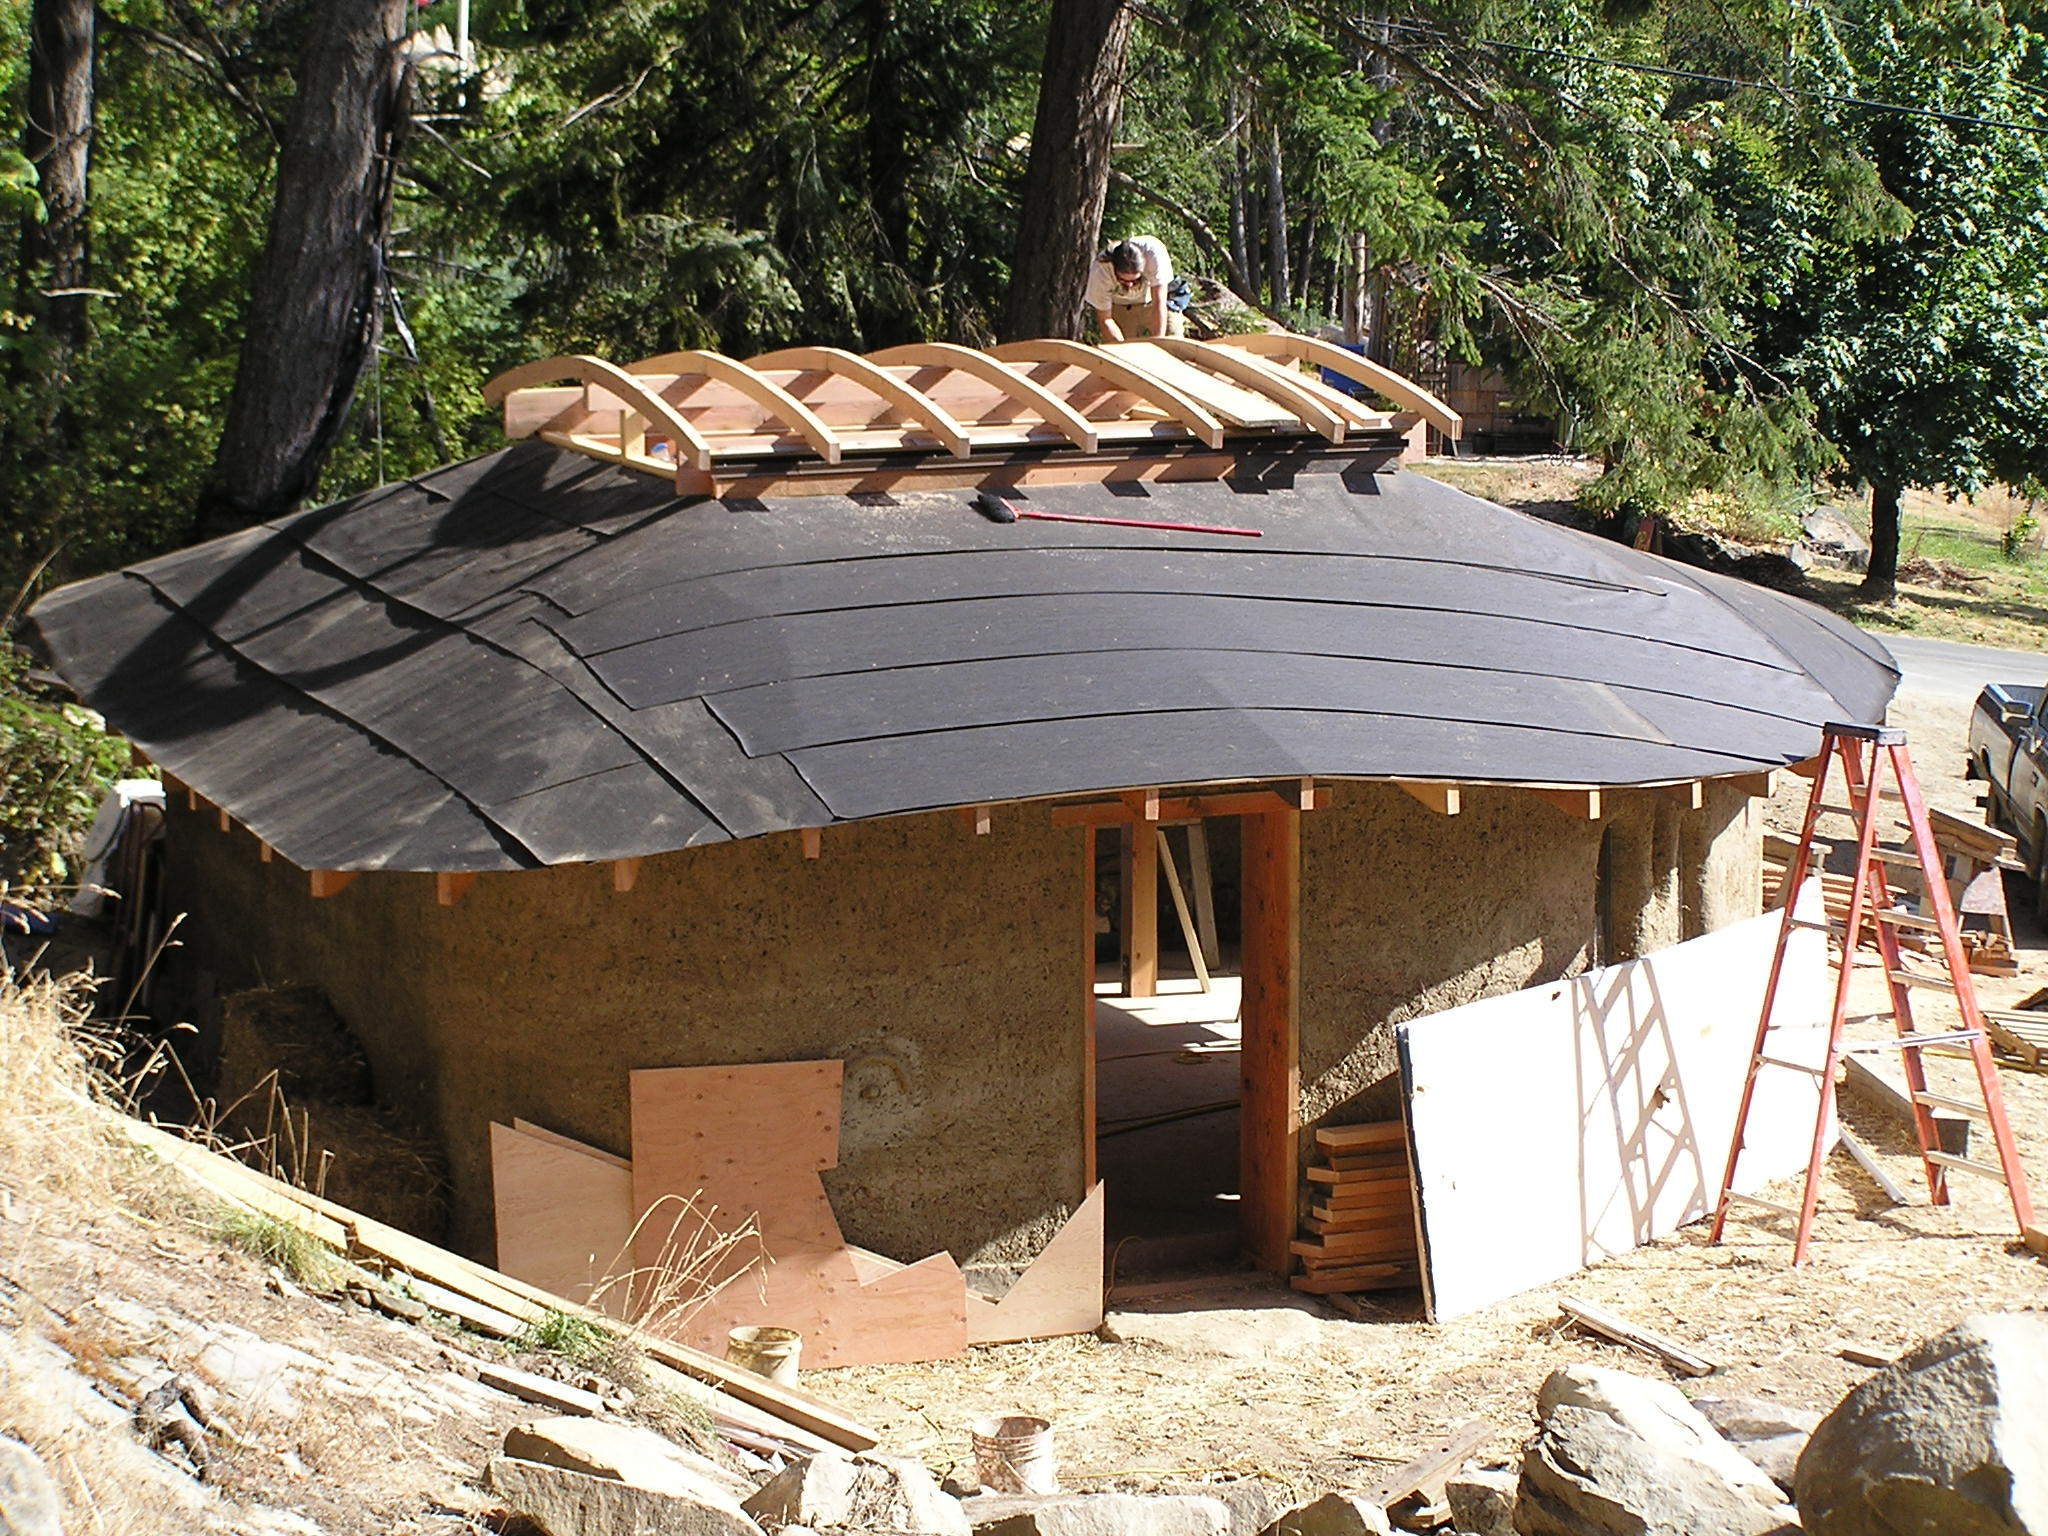 The roof of the cob workshop inspirational village for House roof construction